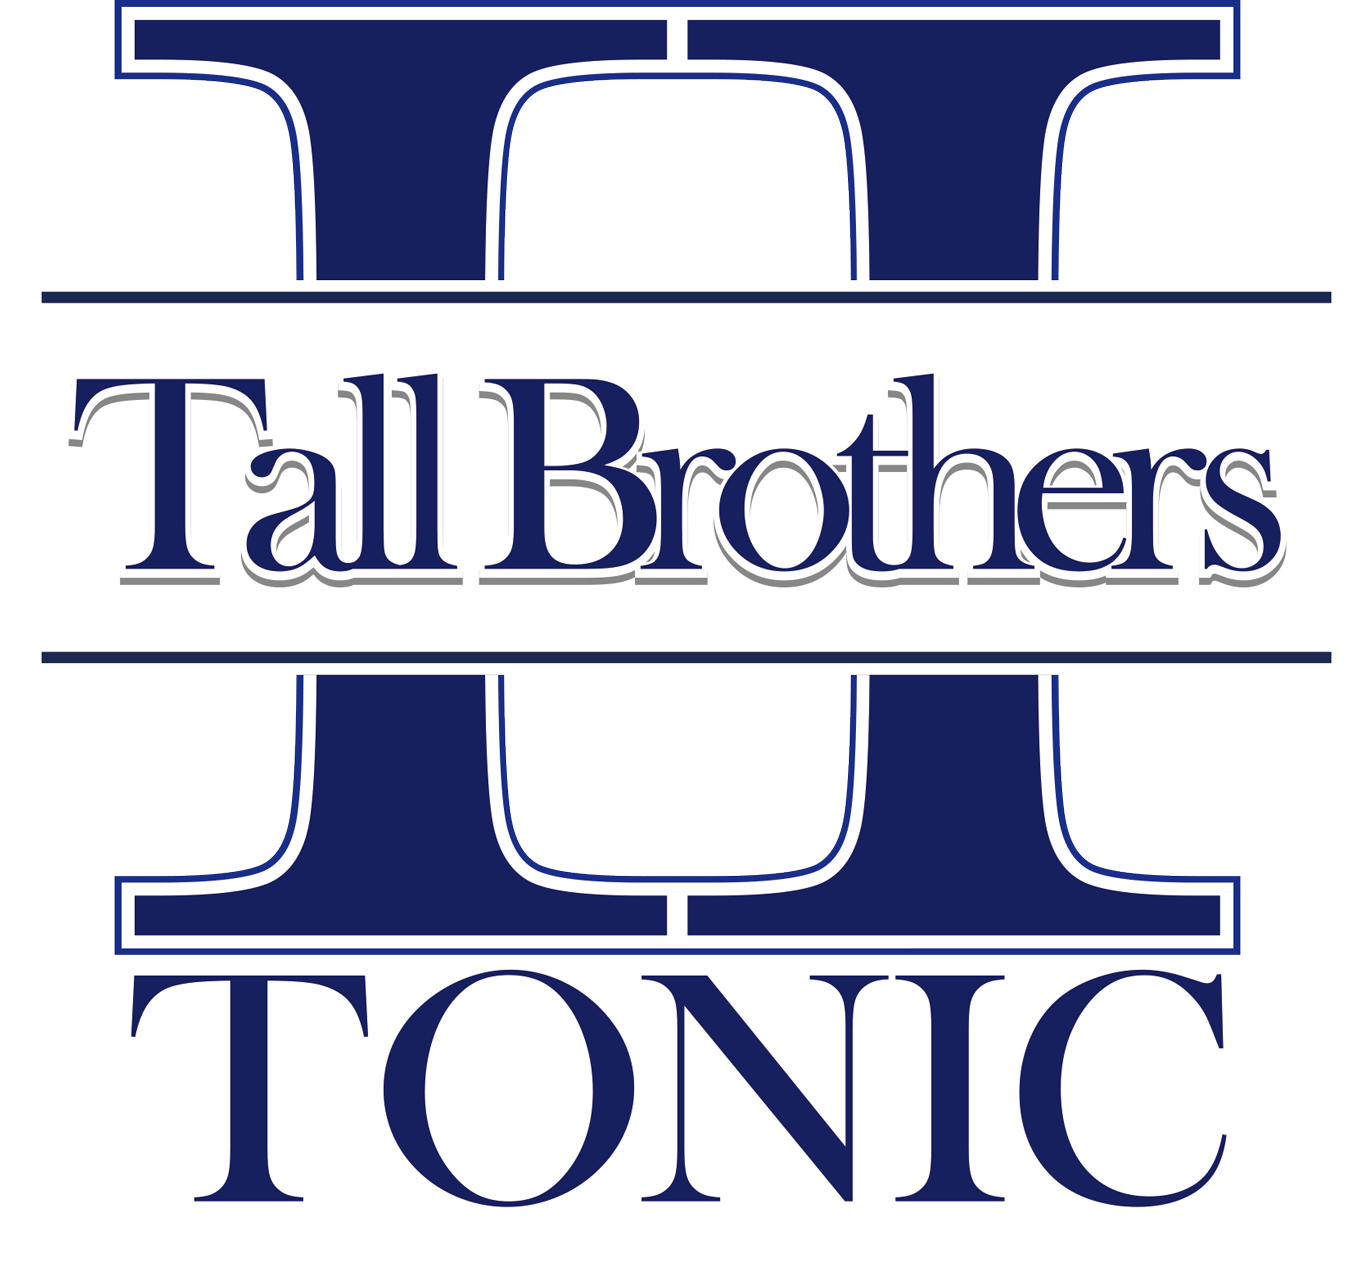 Tall-Brothers-Logo-Large-Size-Tonic.png